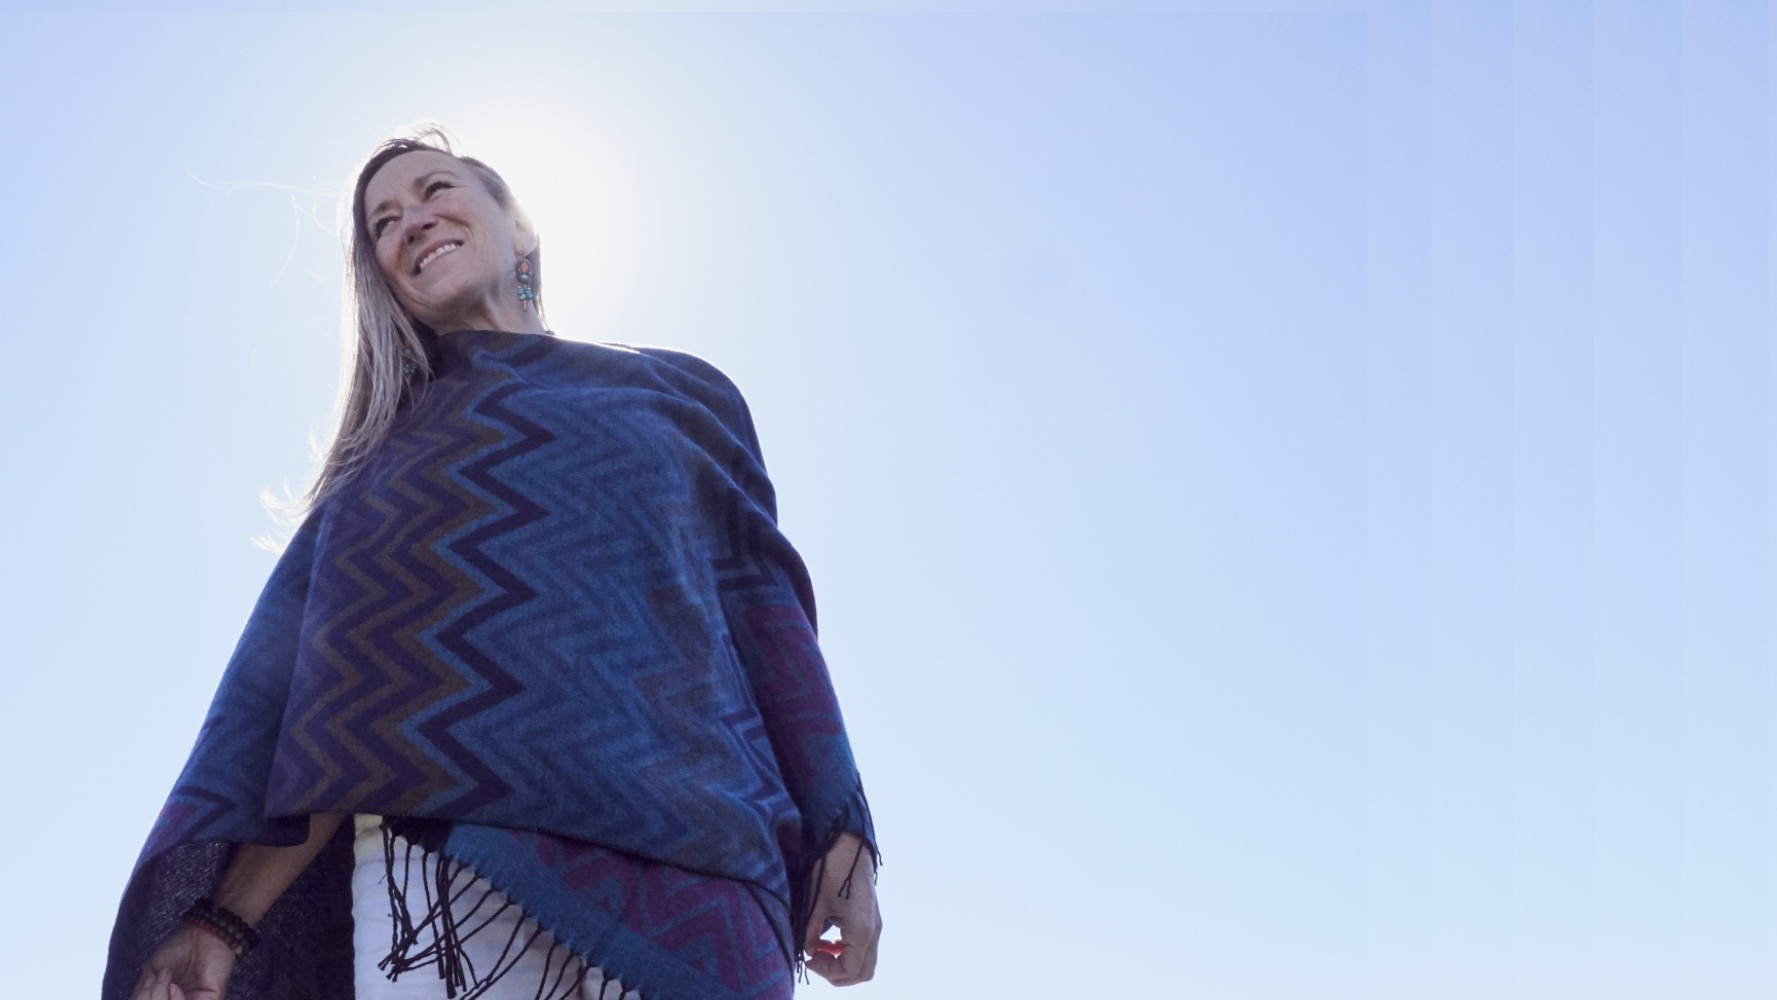 Welcome dear ones - I'm Sand - a Modern day Medicine Woman, spiritual mentor & Intuitive Guide